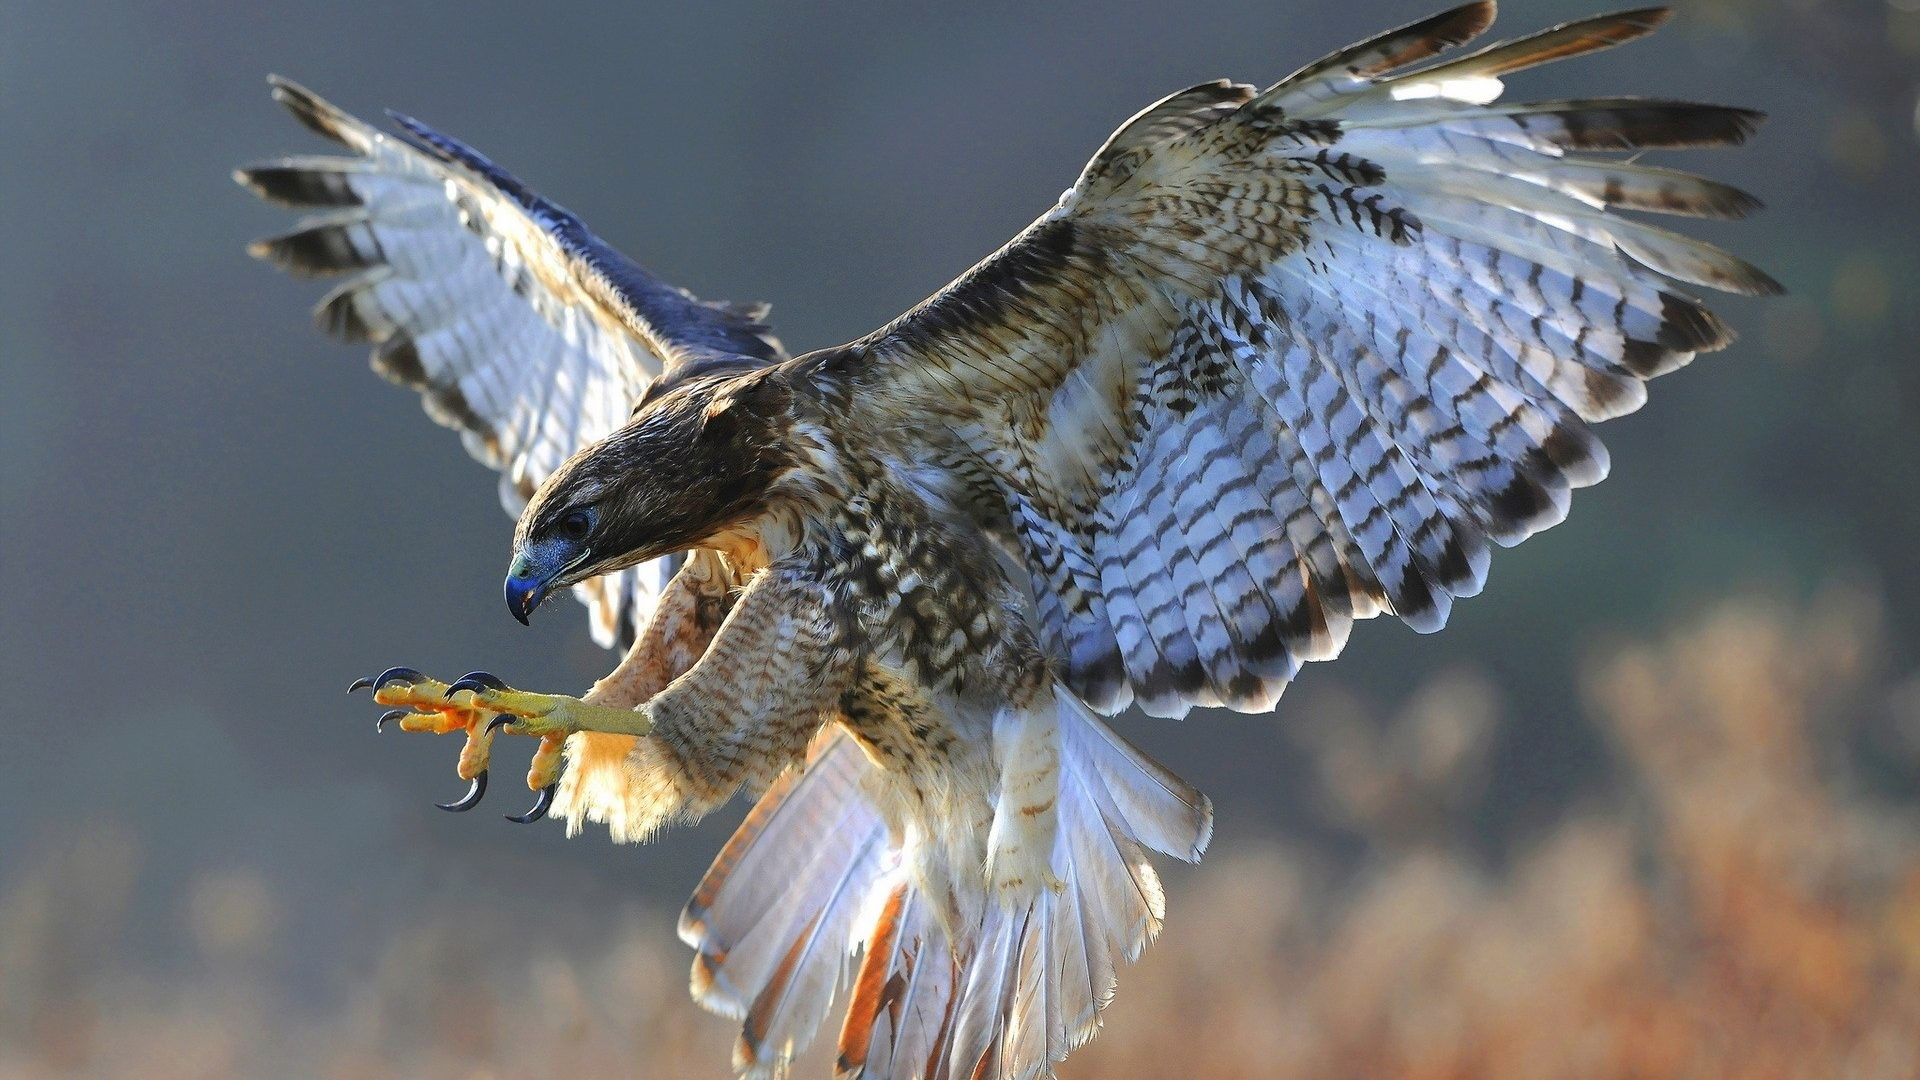 Res: 1920x1080, Hawk Tag - Flight Nature Bird Hawk Wallpaper Birds Hd Download for HD 16:9